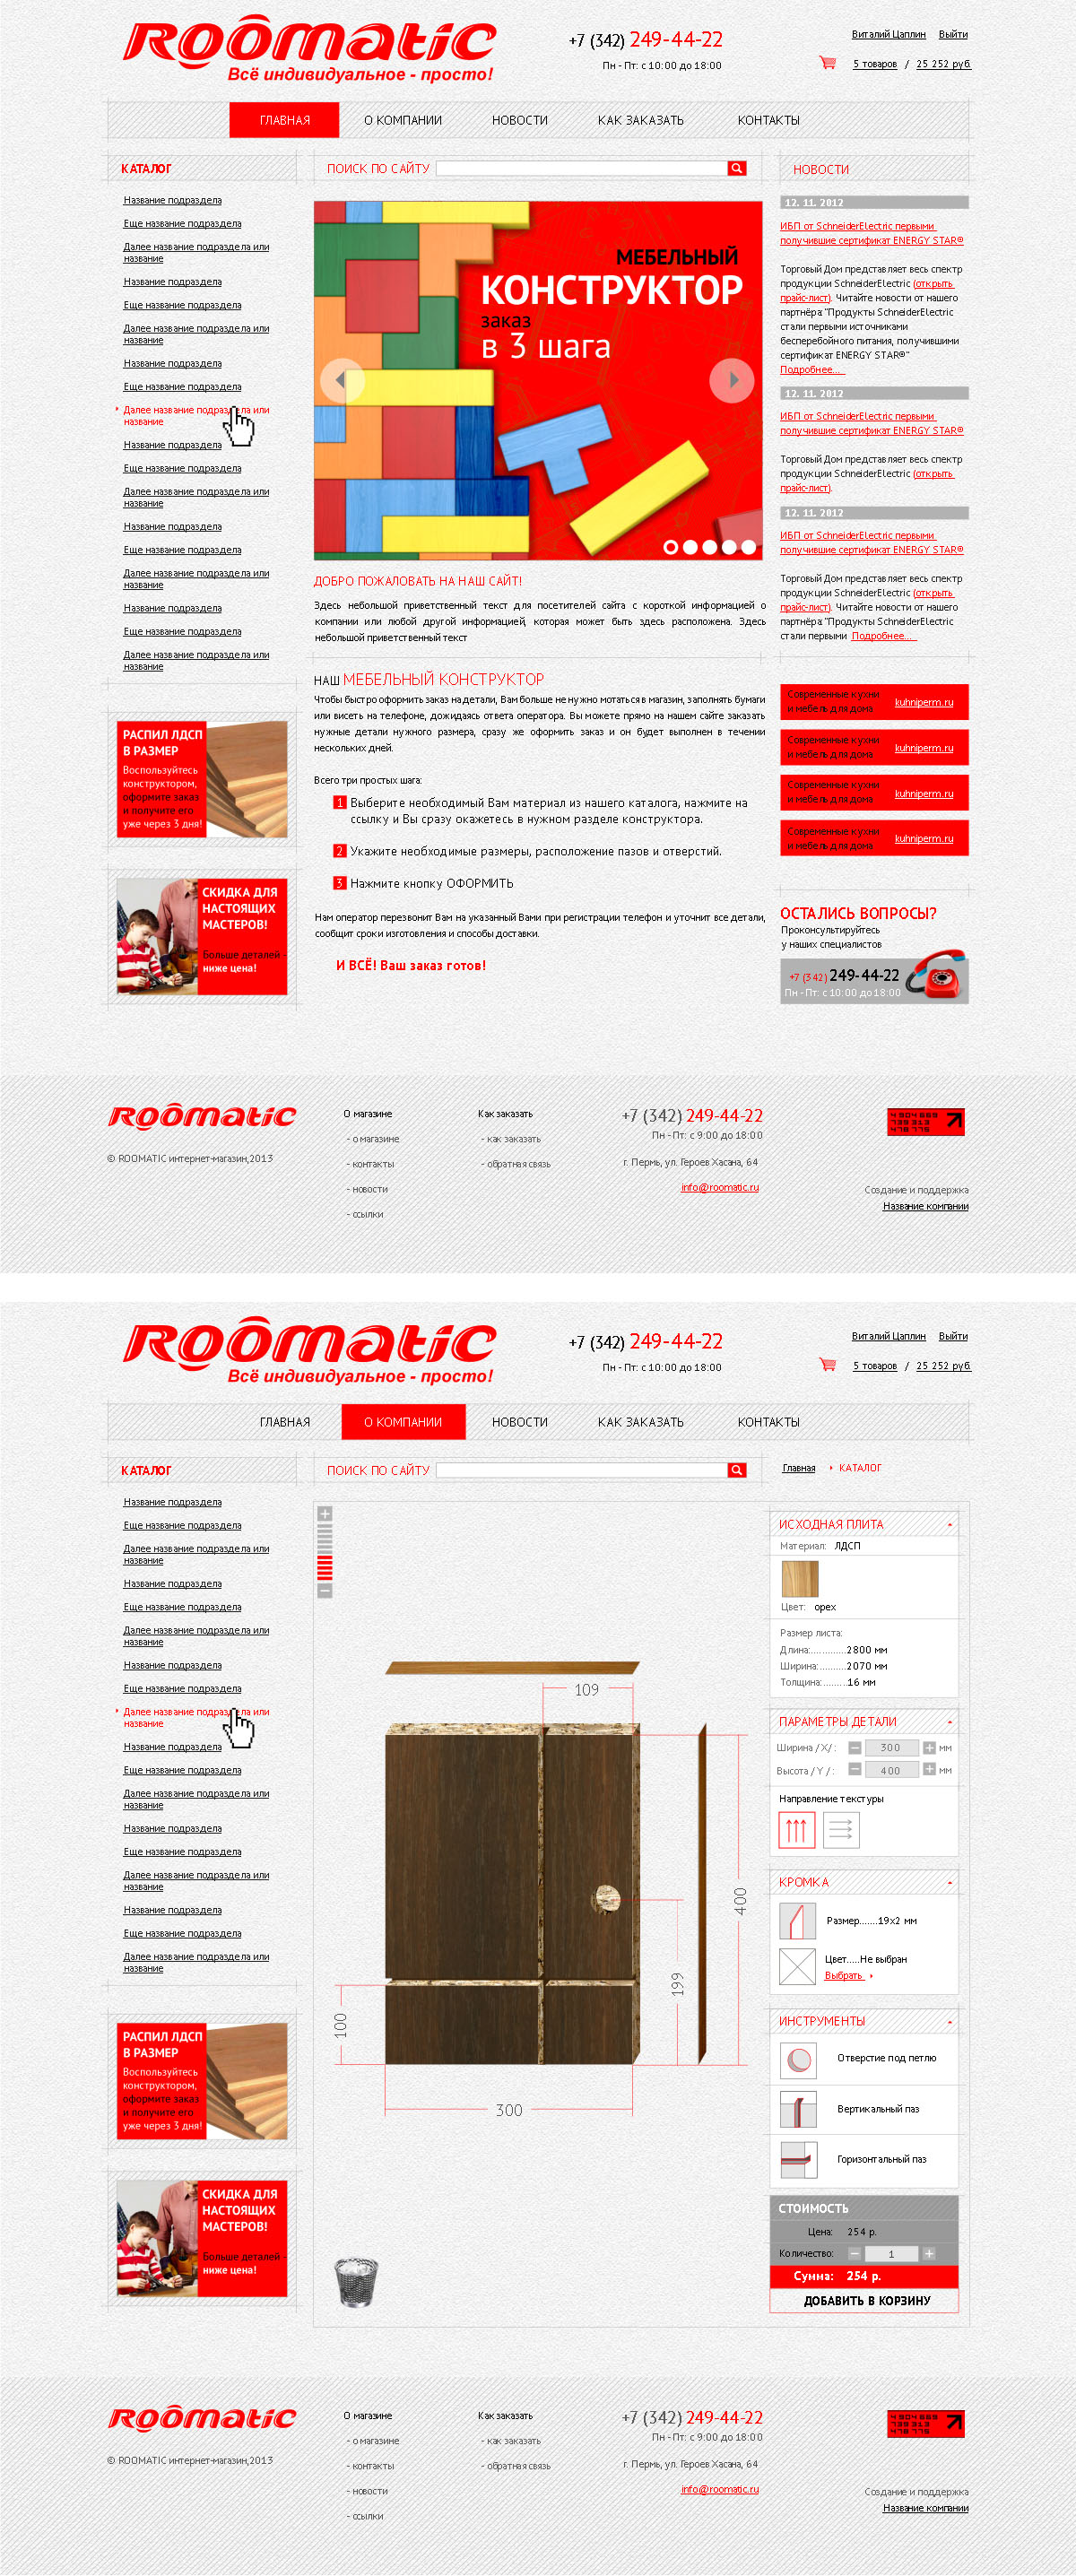 Roomatic